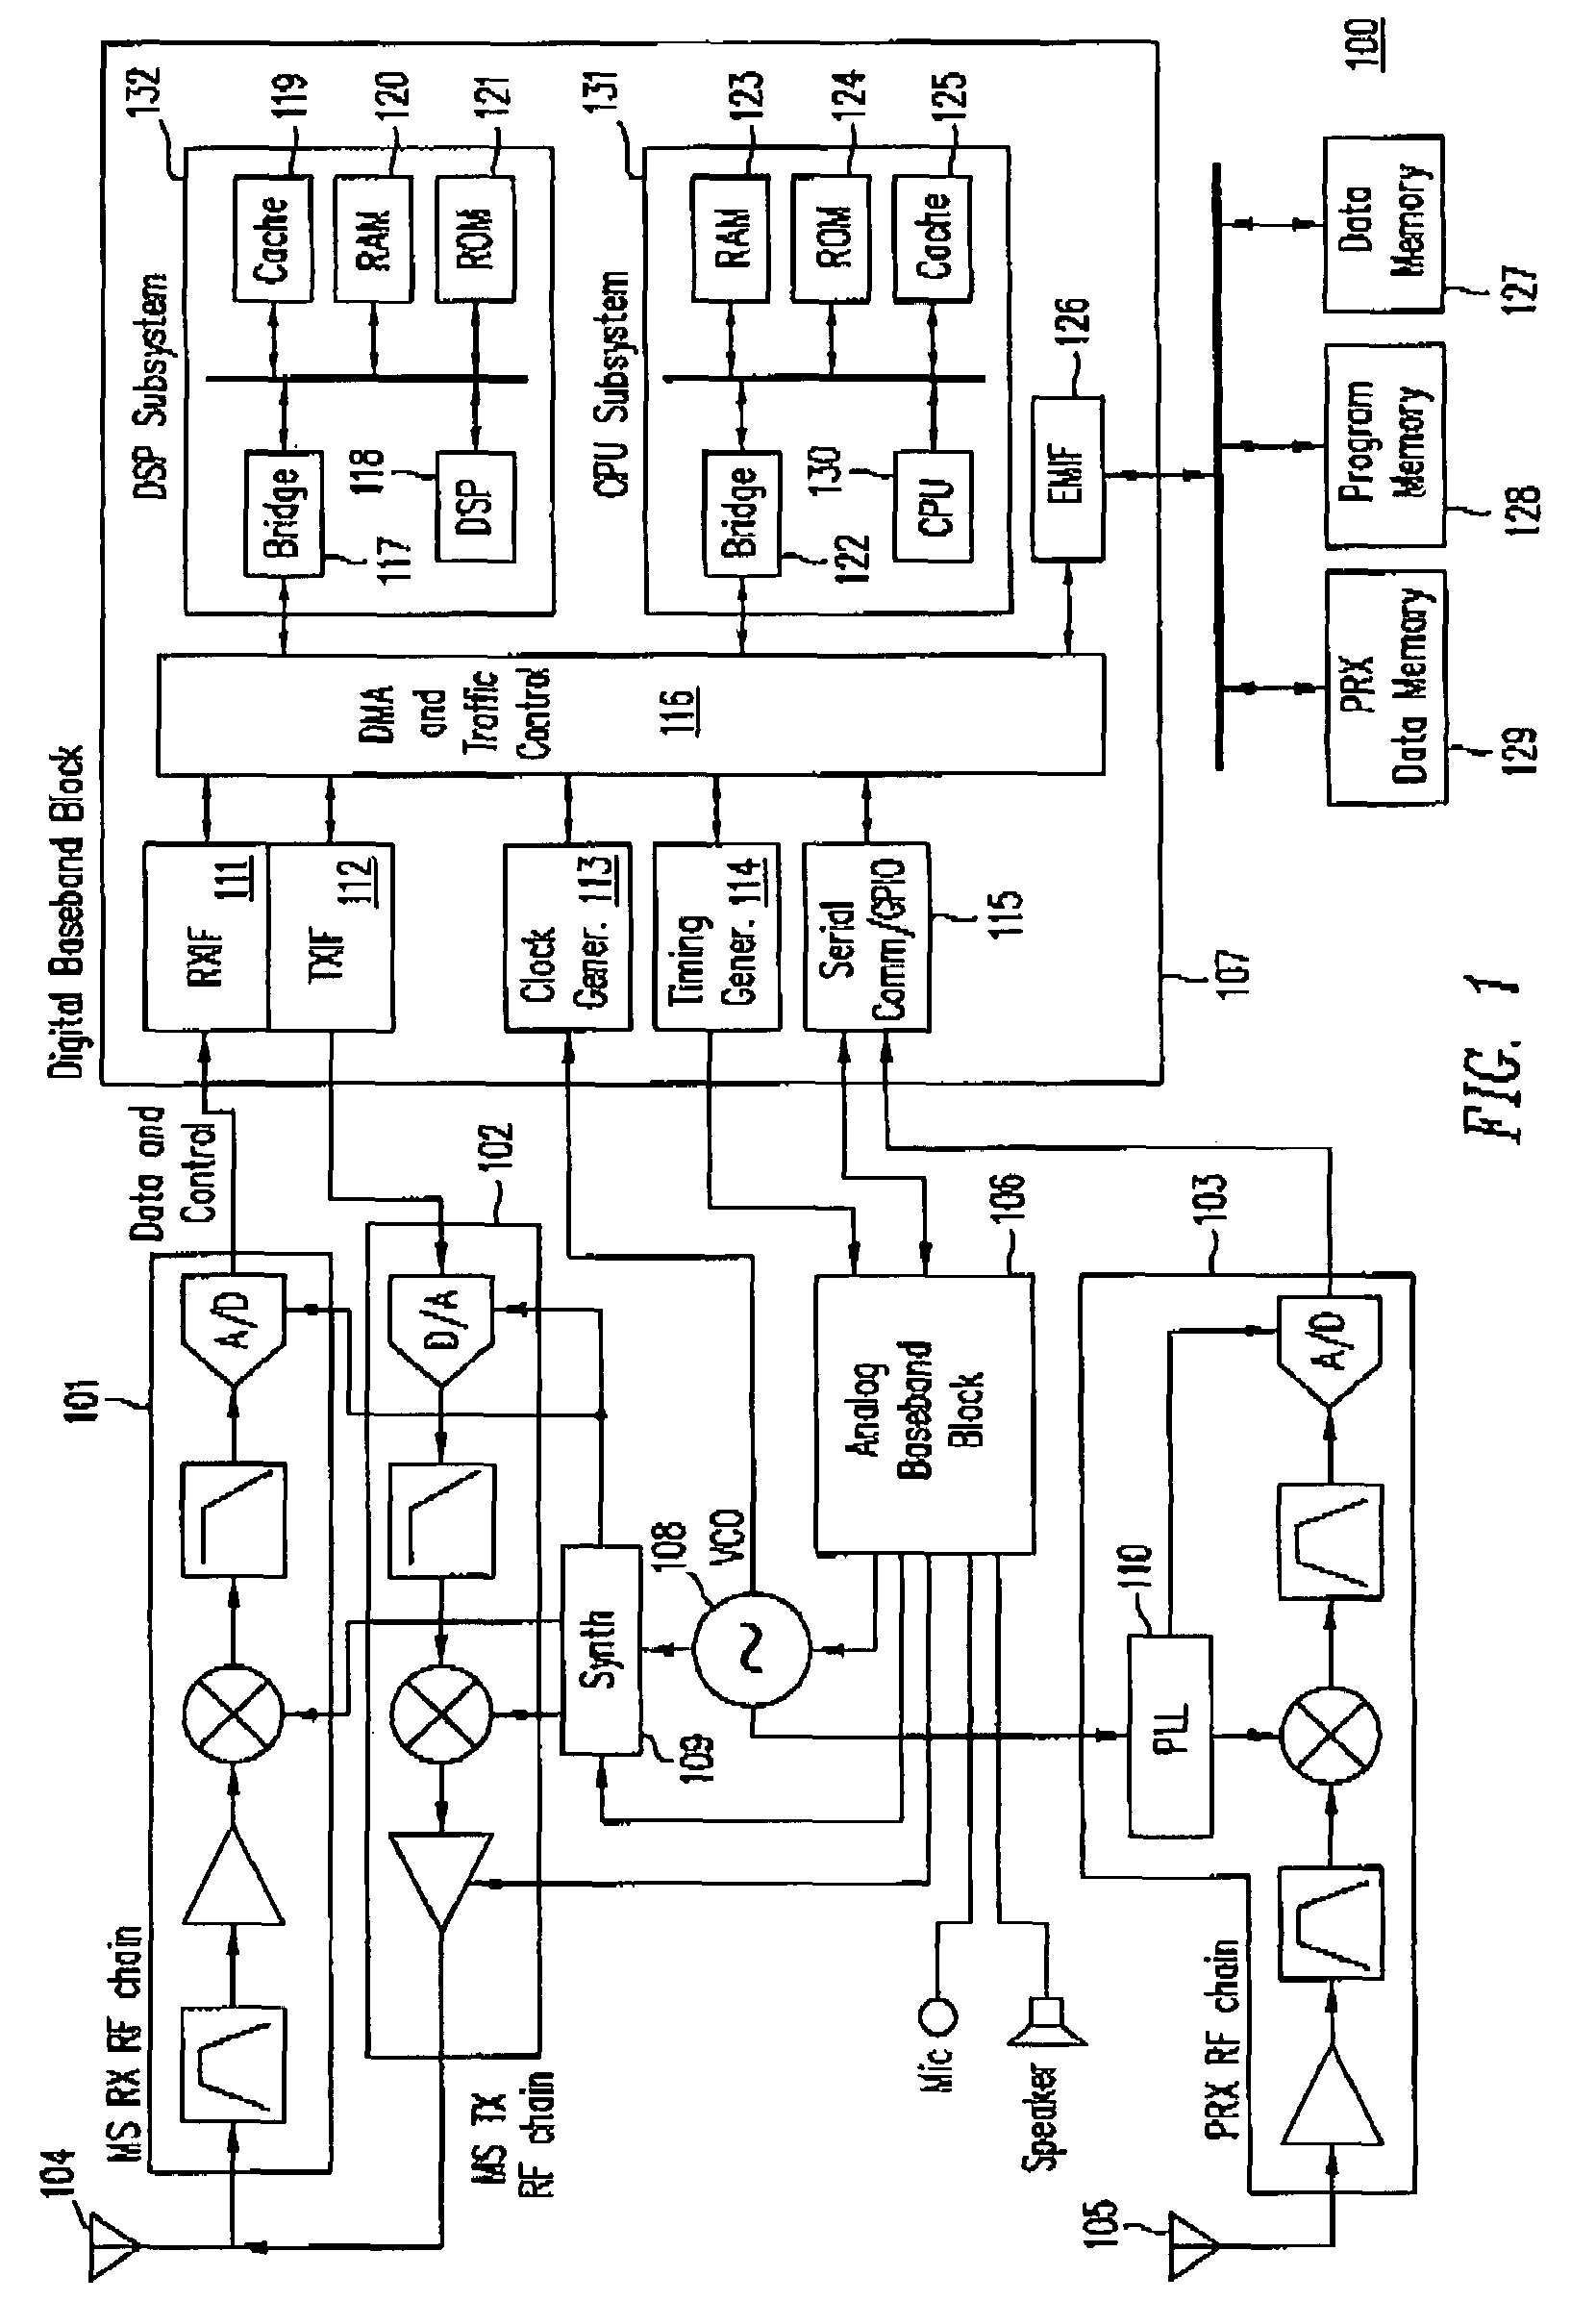 Patent Us7299024 Compensation For Frequency Adjustment In Mobile Circuit Gpsreceiver Communicationcircuit Diagram Drawing